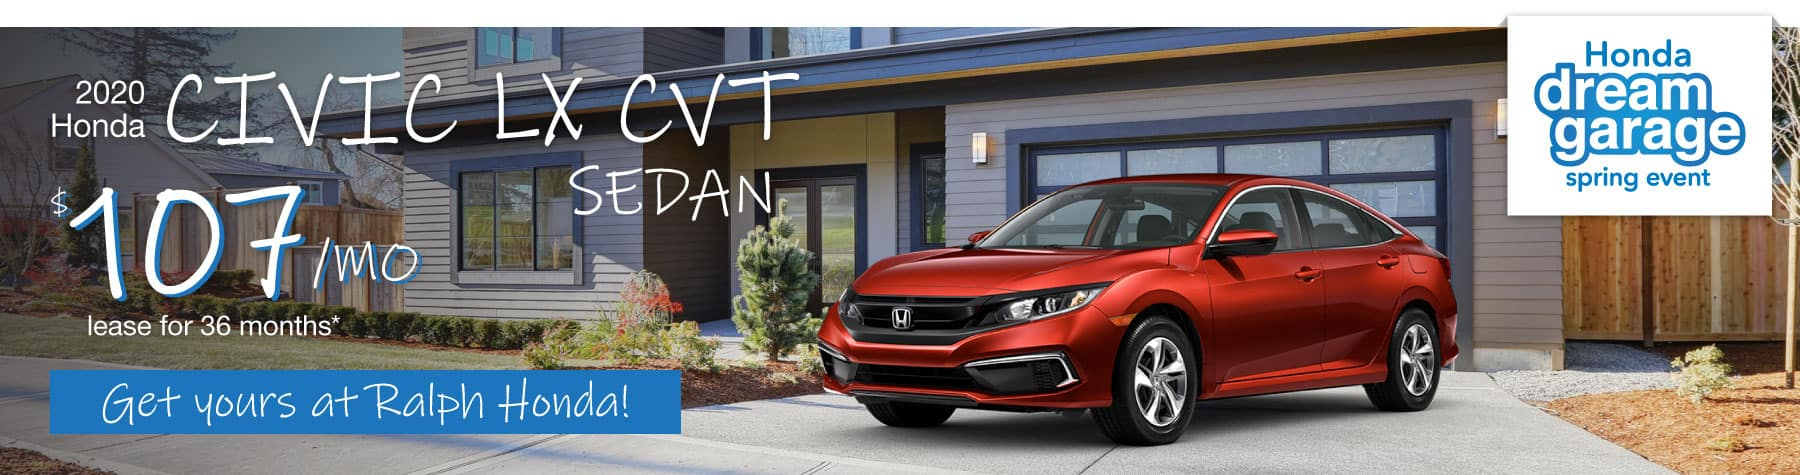 Header Photo of the 2020 Honda Civic